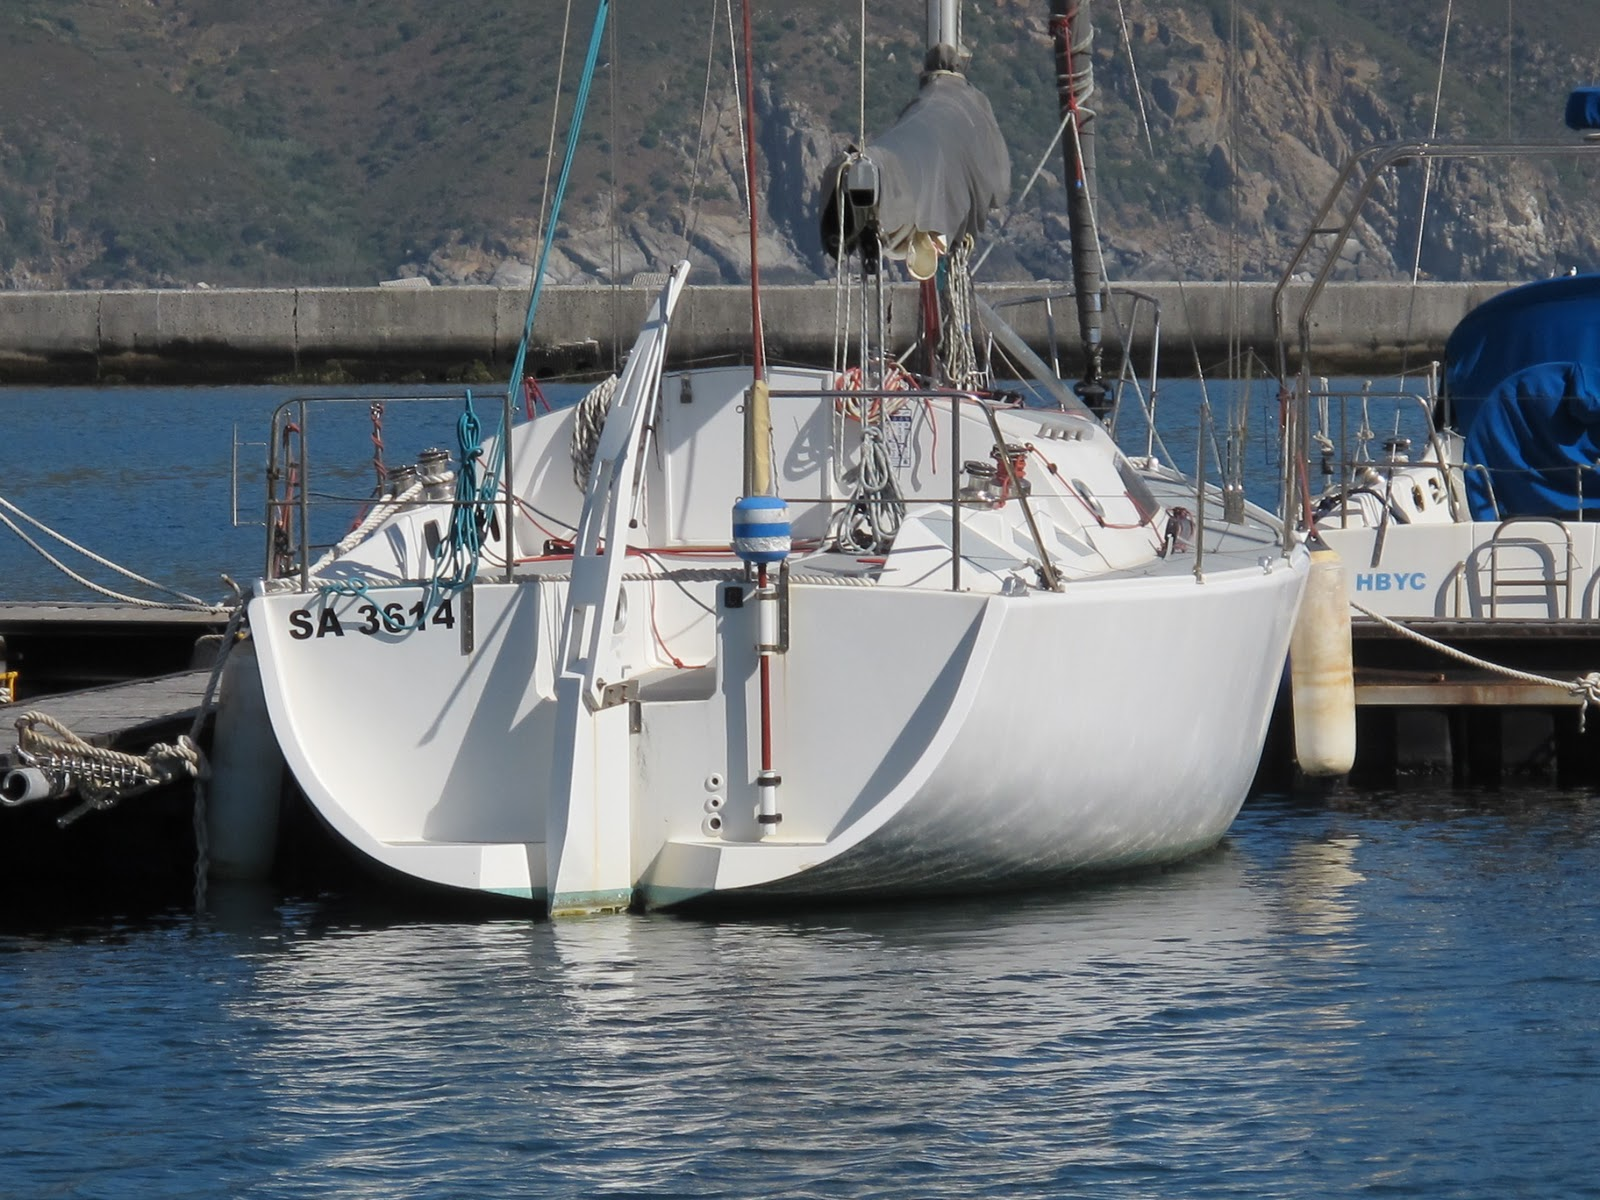 CKD Boats - Roy Mc Bride: One of our kit builds,the Didi